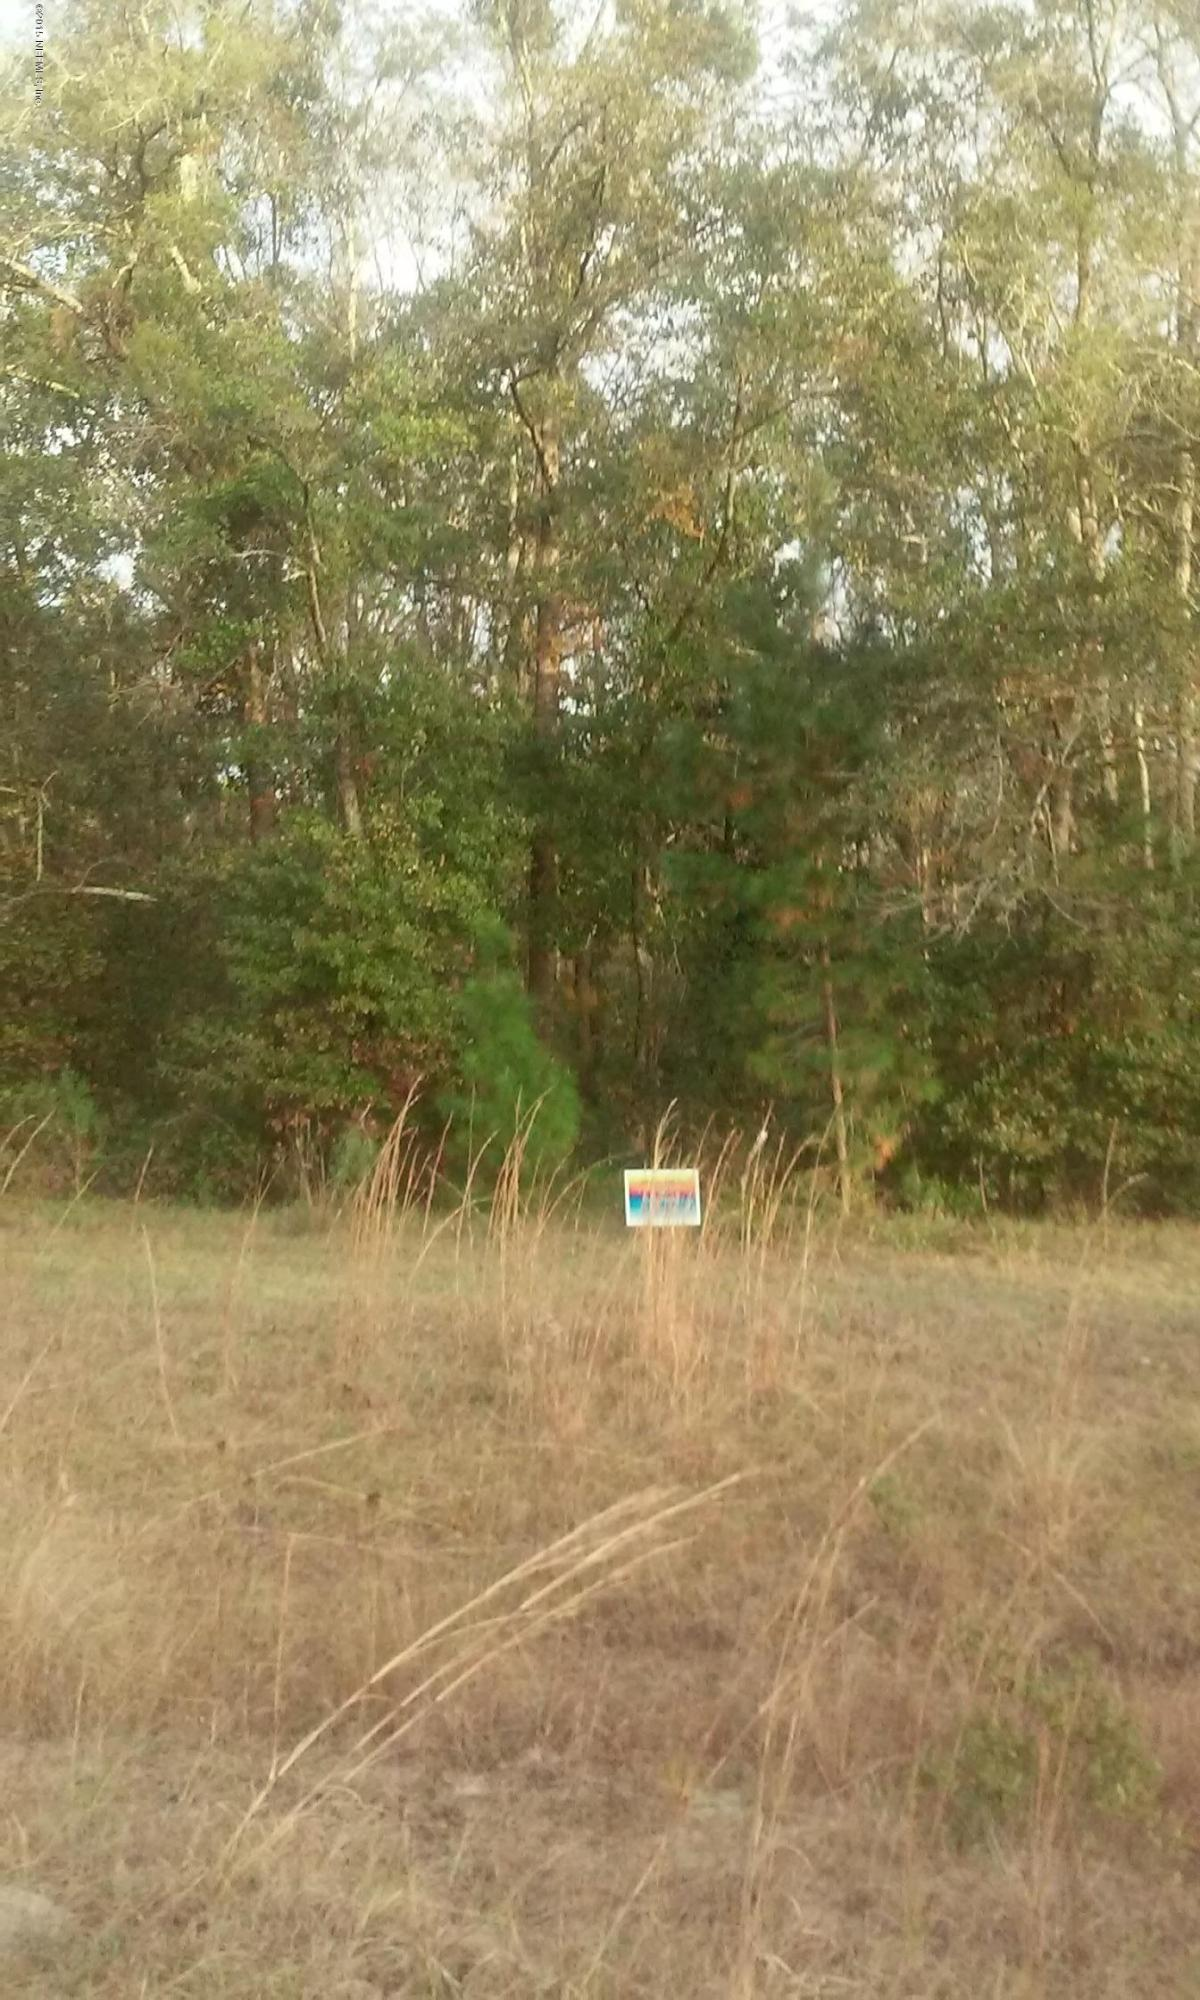 01234 COMMANDER ROW, LAKE CITY, FLORIDA 32025, ,Vacant land,For sale,COMMANDER ROW,748327